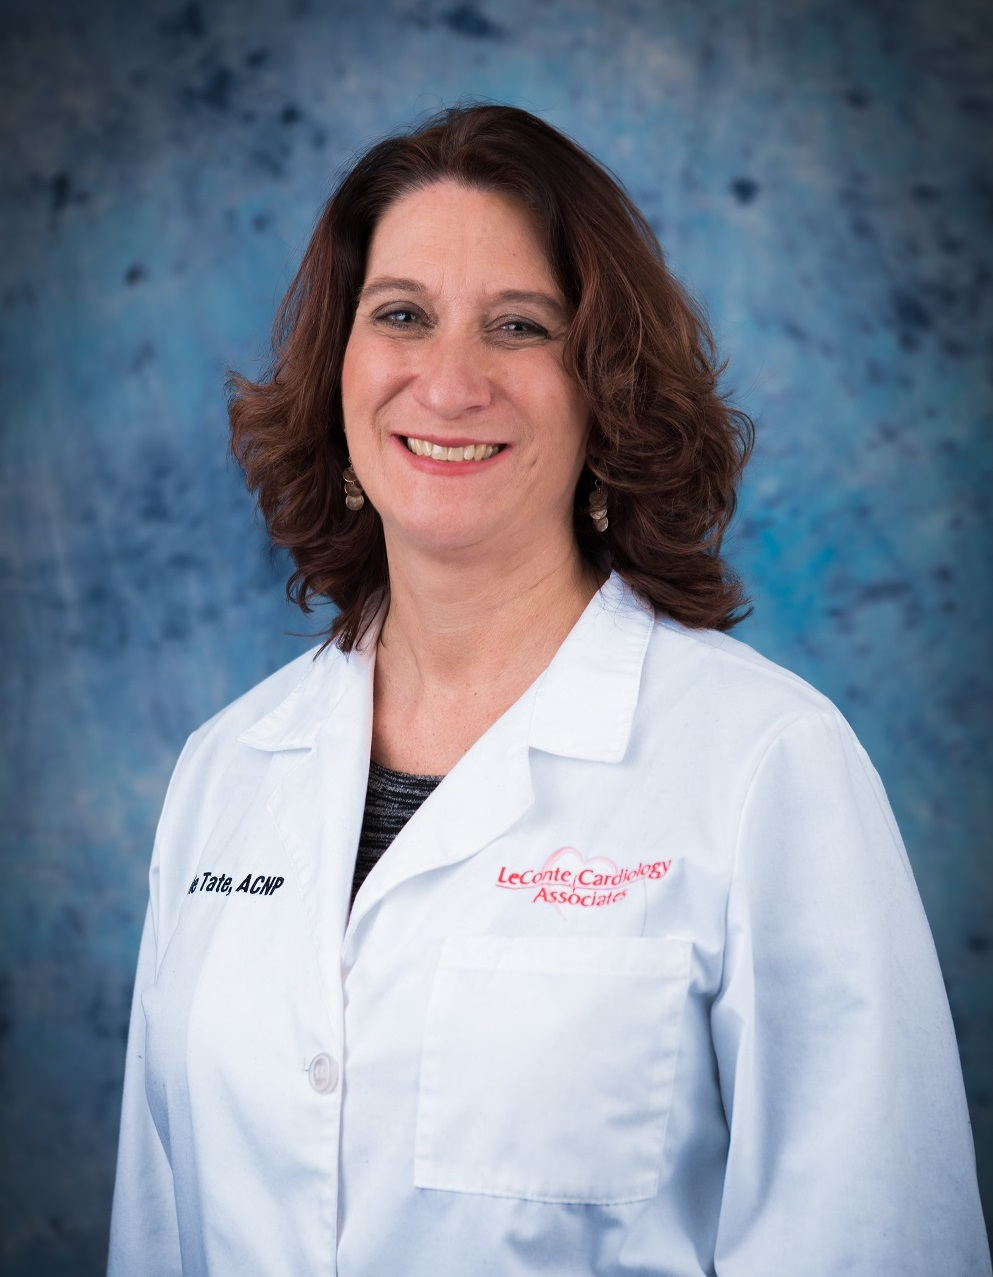 Lorrie Tate, NP of the heart care team at LeConte Cardiology Associates.